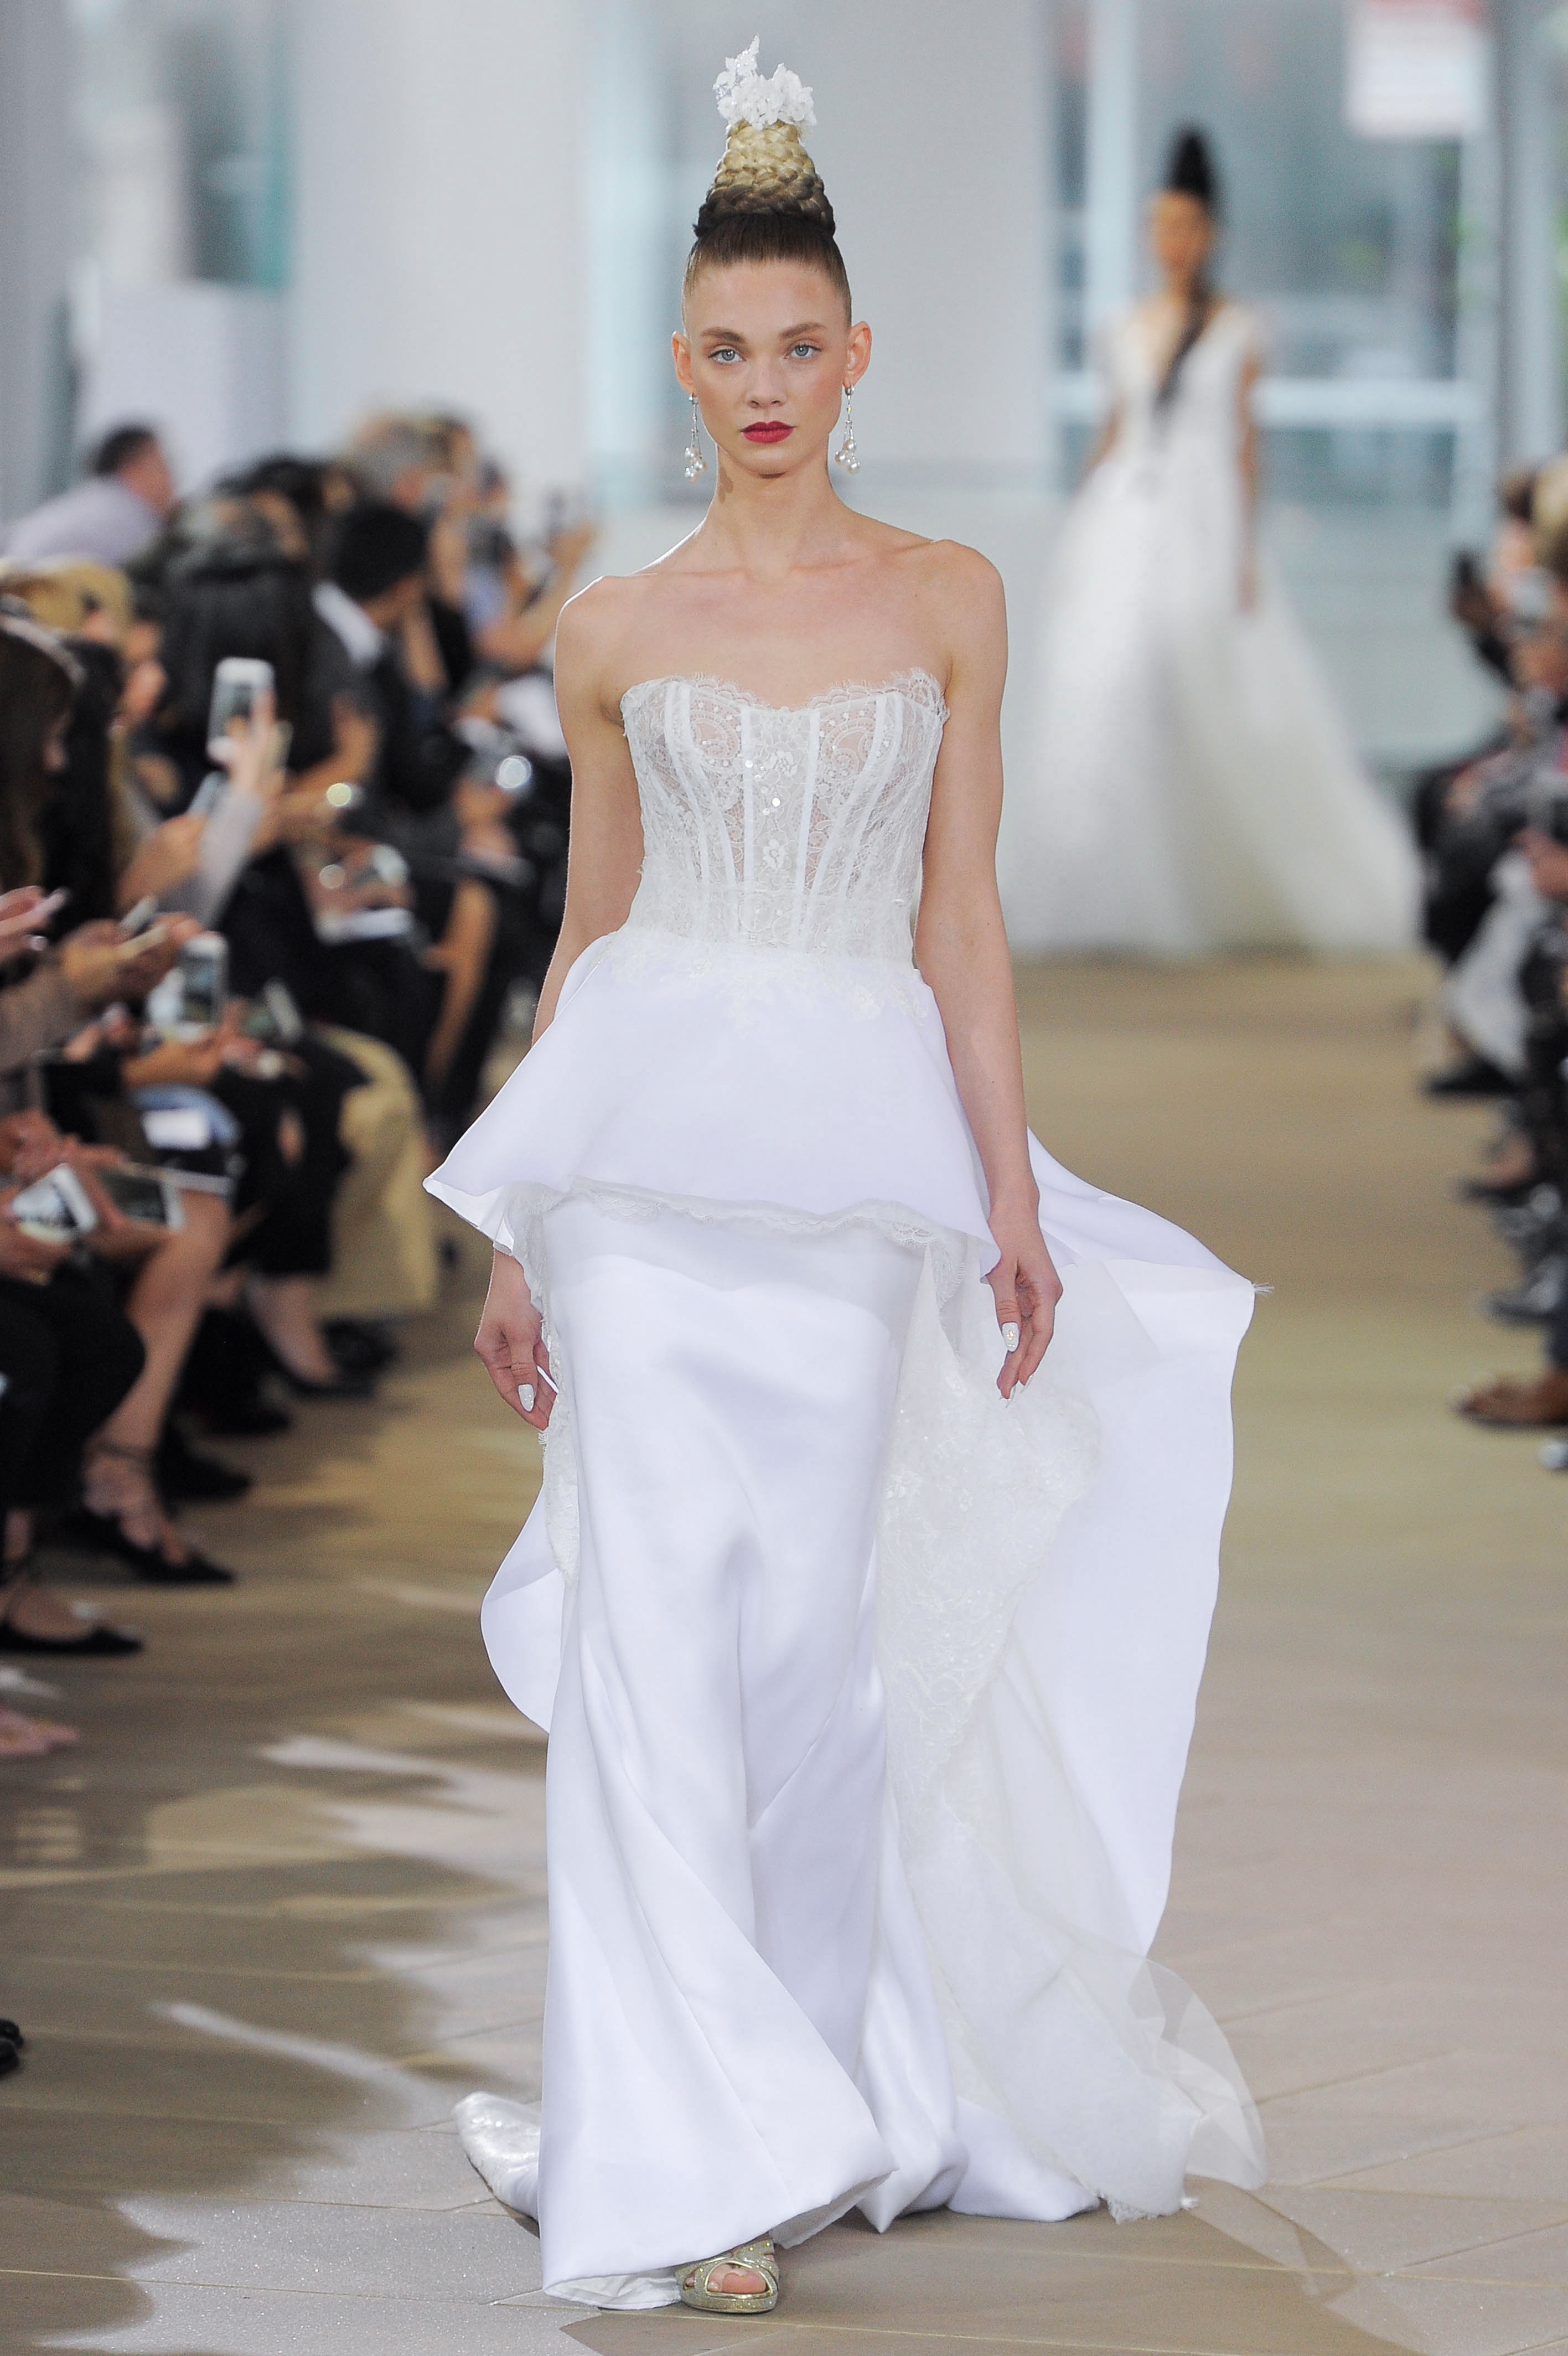 Strapless Ines Di Santo Wedding Dress with Sweetheart Neckline Spring 2018